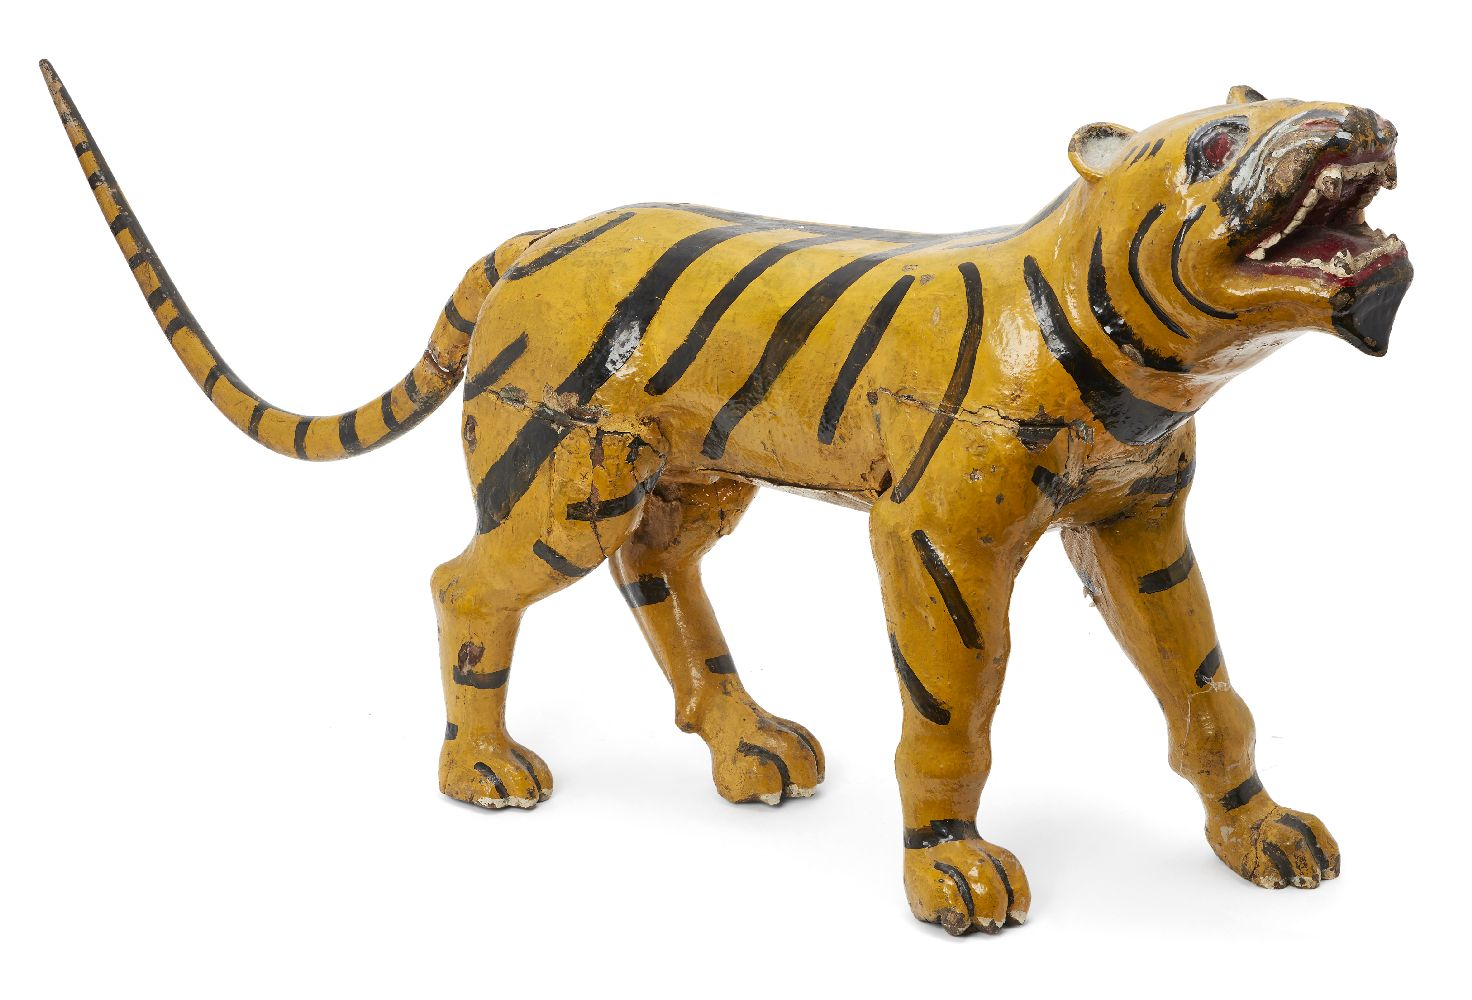 A Burmese painted wood tiger, Tai Yan (Shan States), early 20th century, prowling forwards in mid-